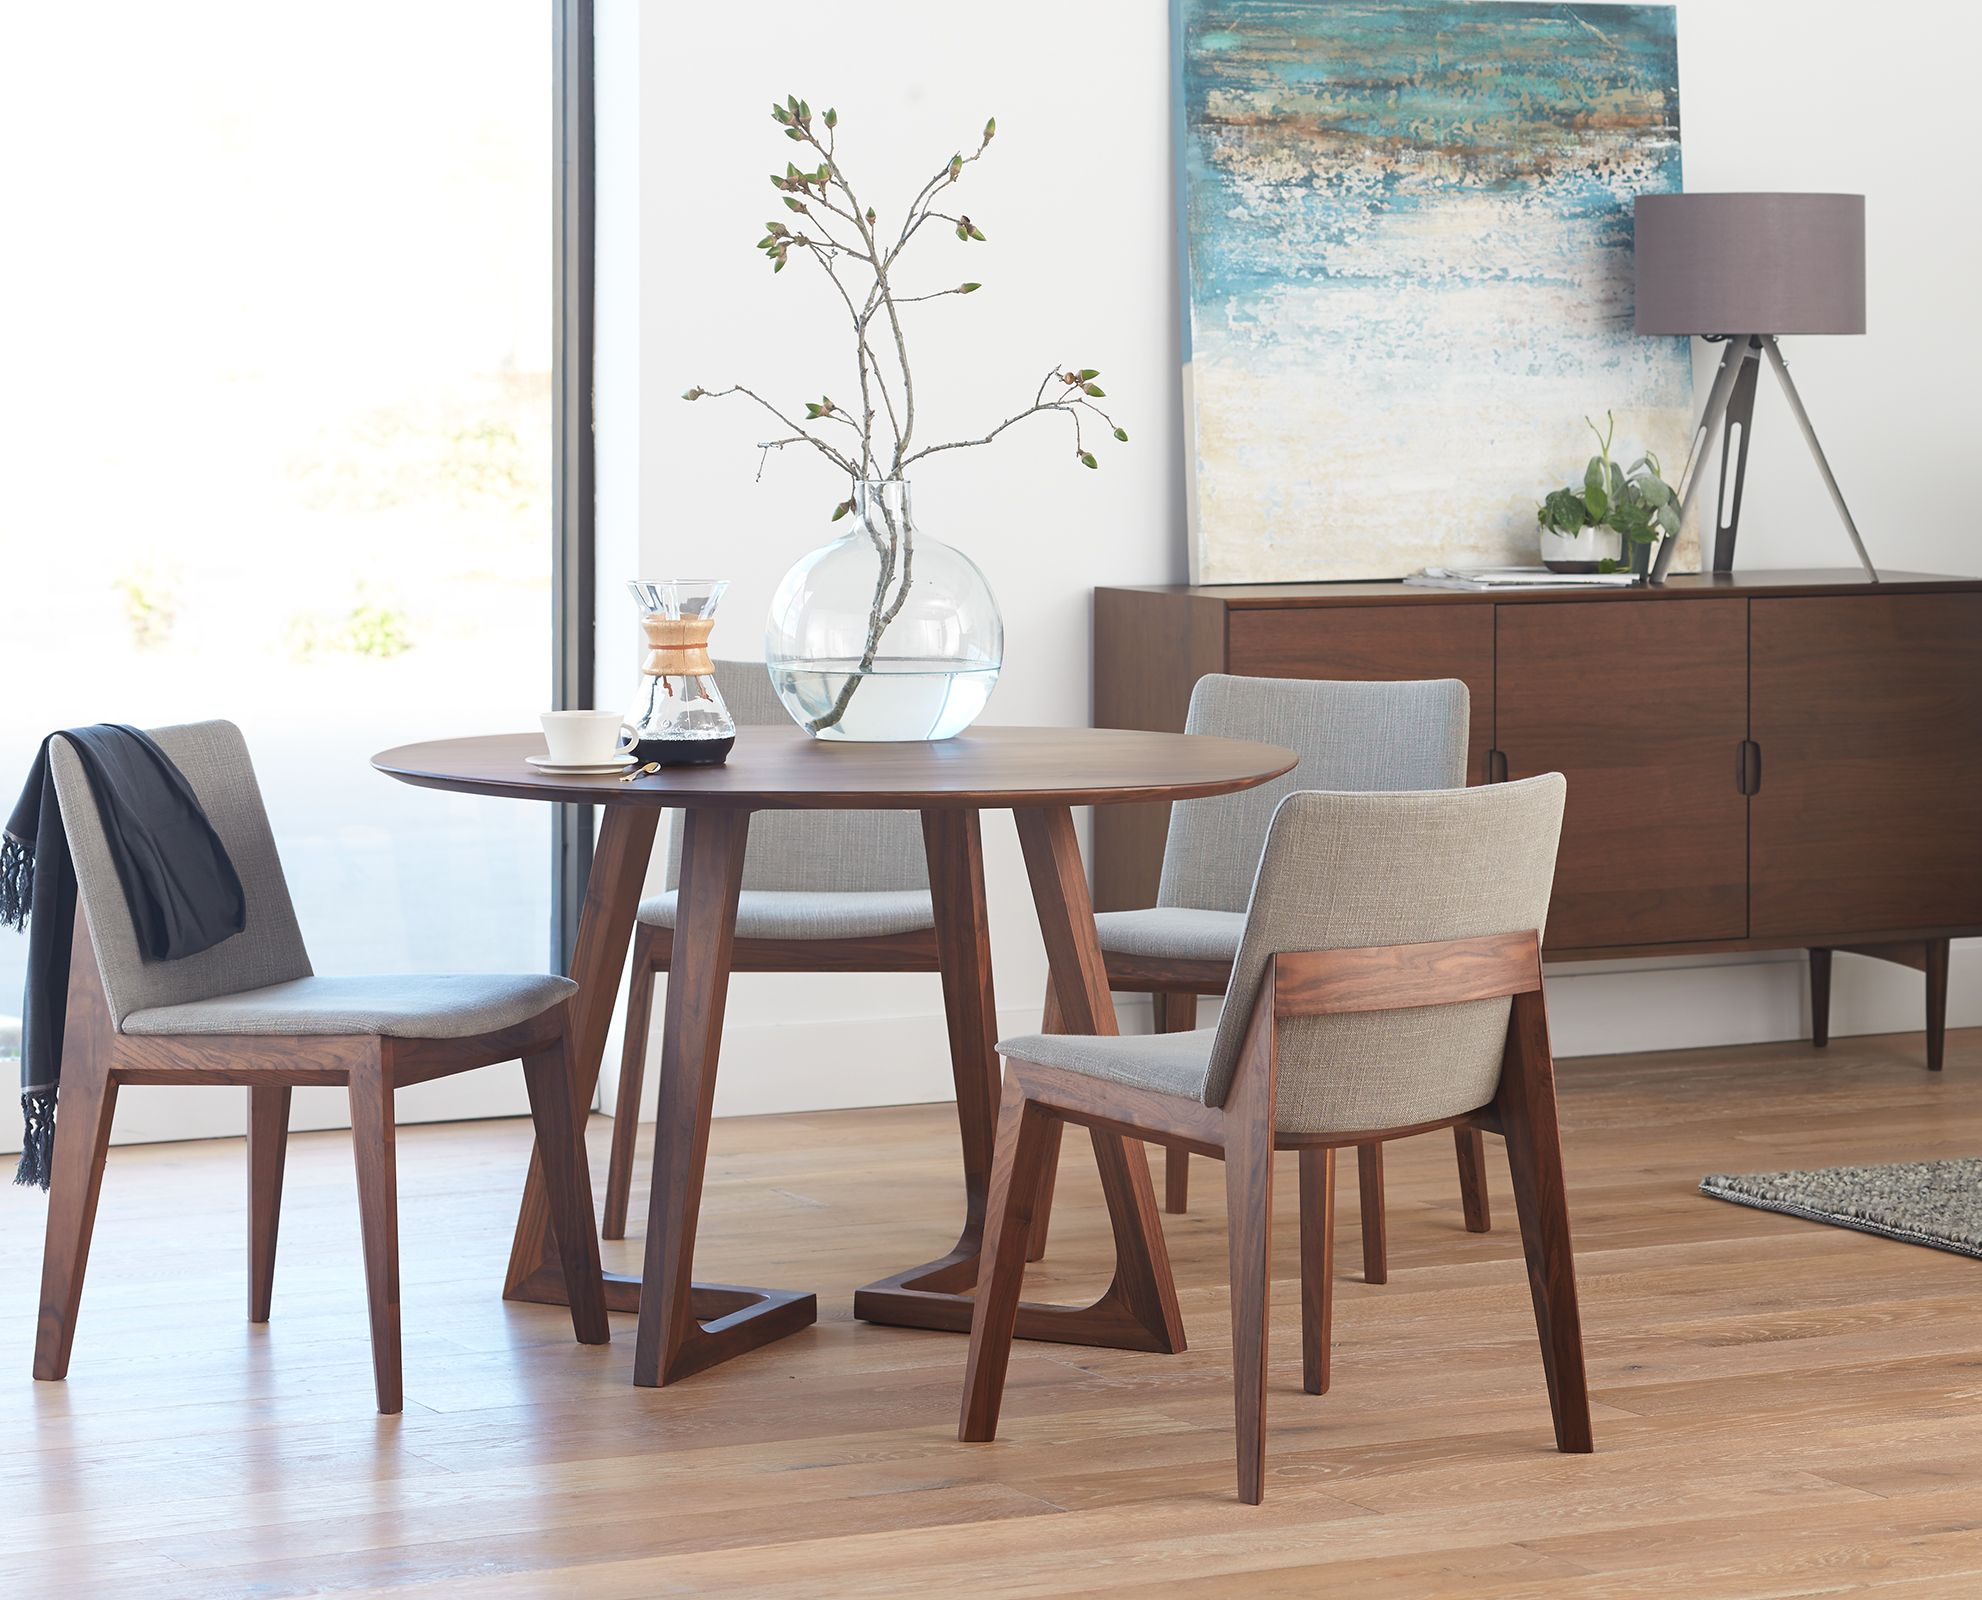 Round table and chairs from Dania | Condo | Pinterest | Rounding ...